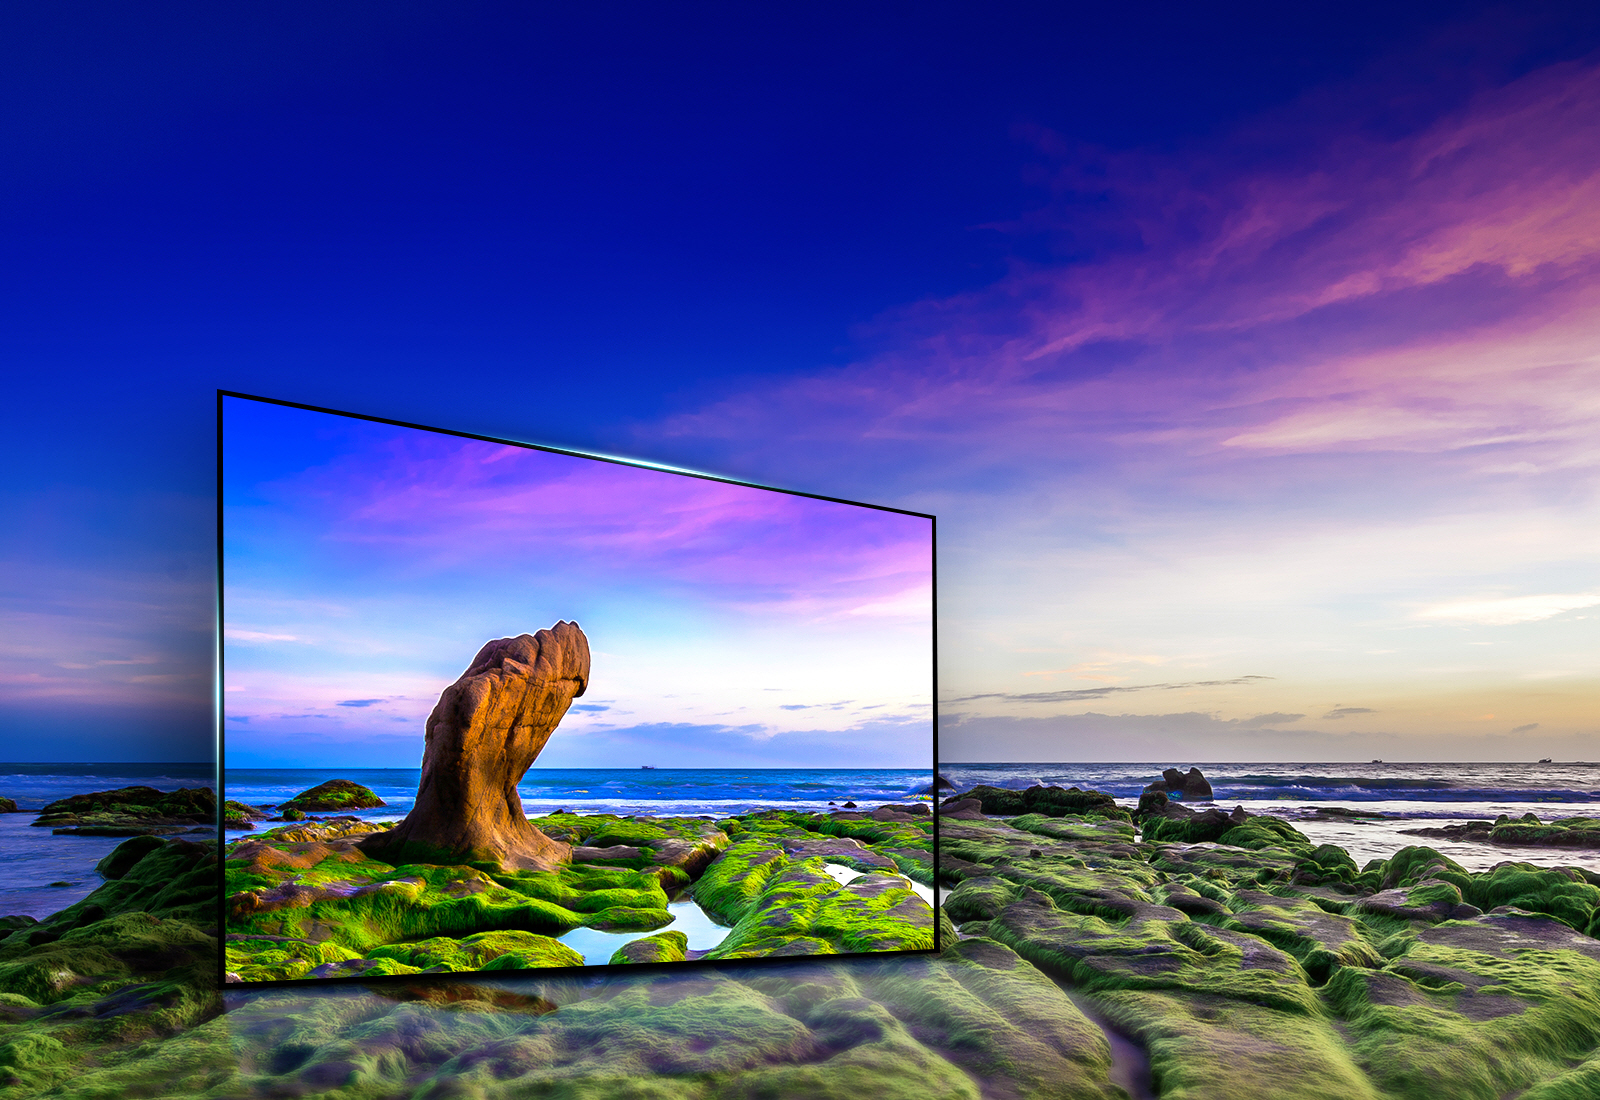 OLED TVs - Unmatched Color Realism